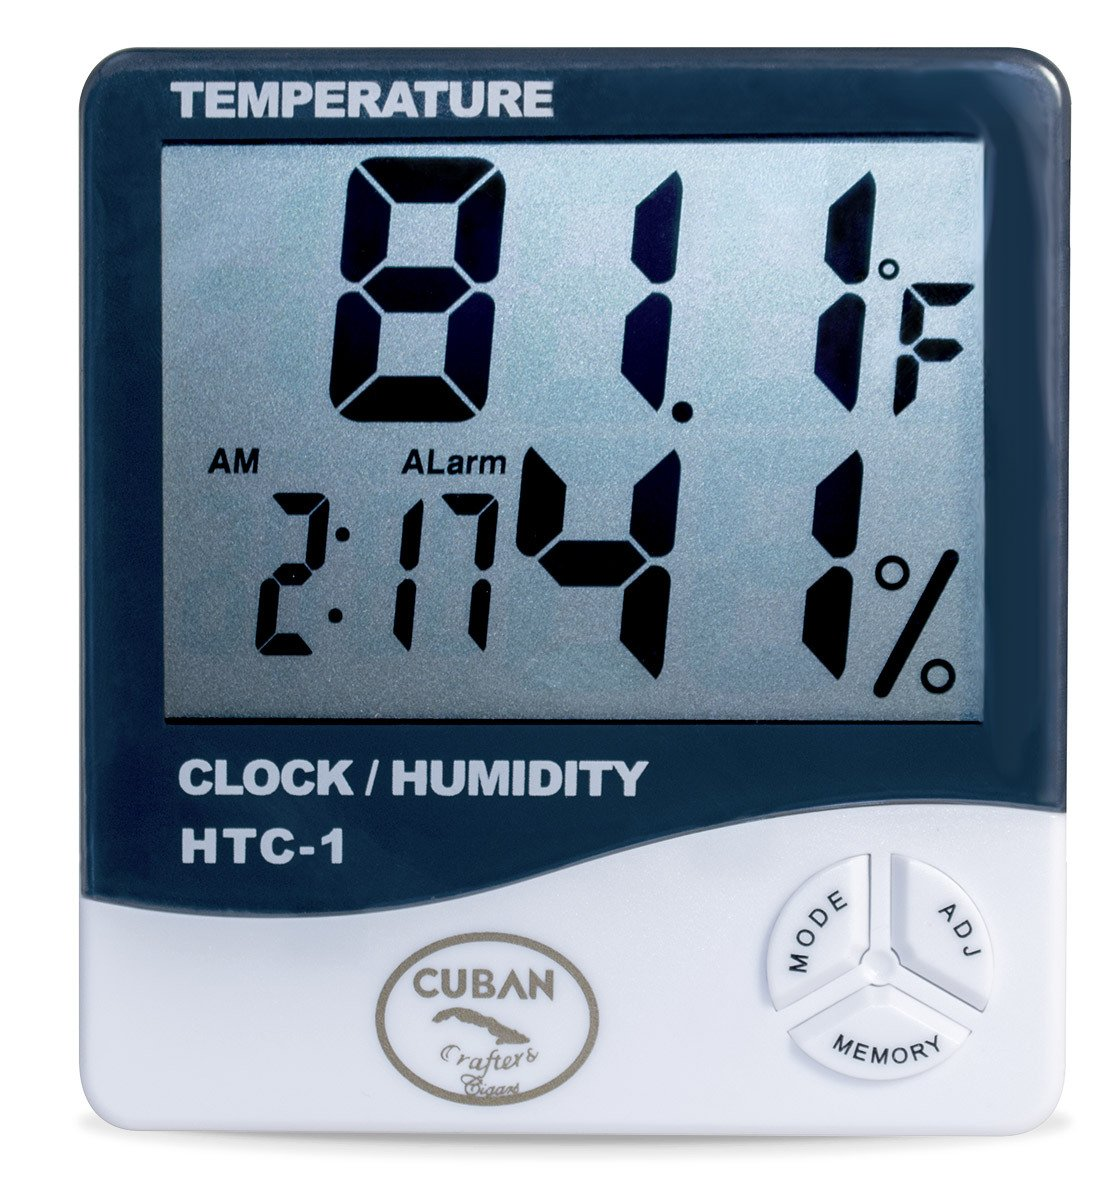 Digital Hygrometer Thermometer for Cigar Humidors